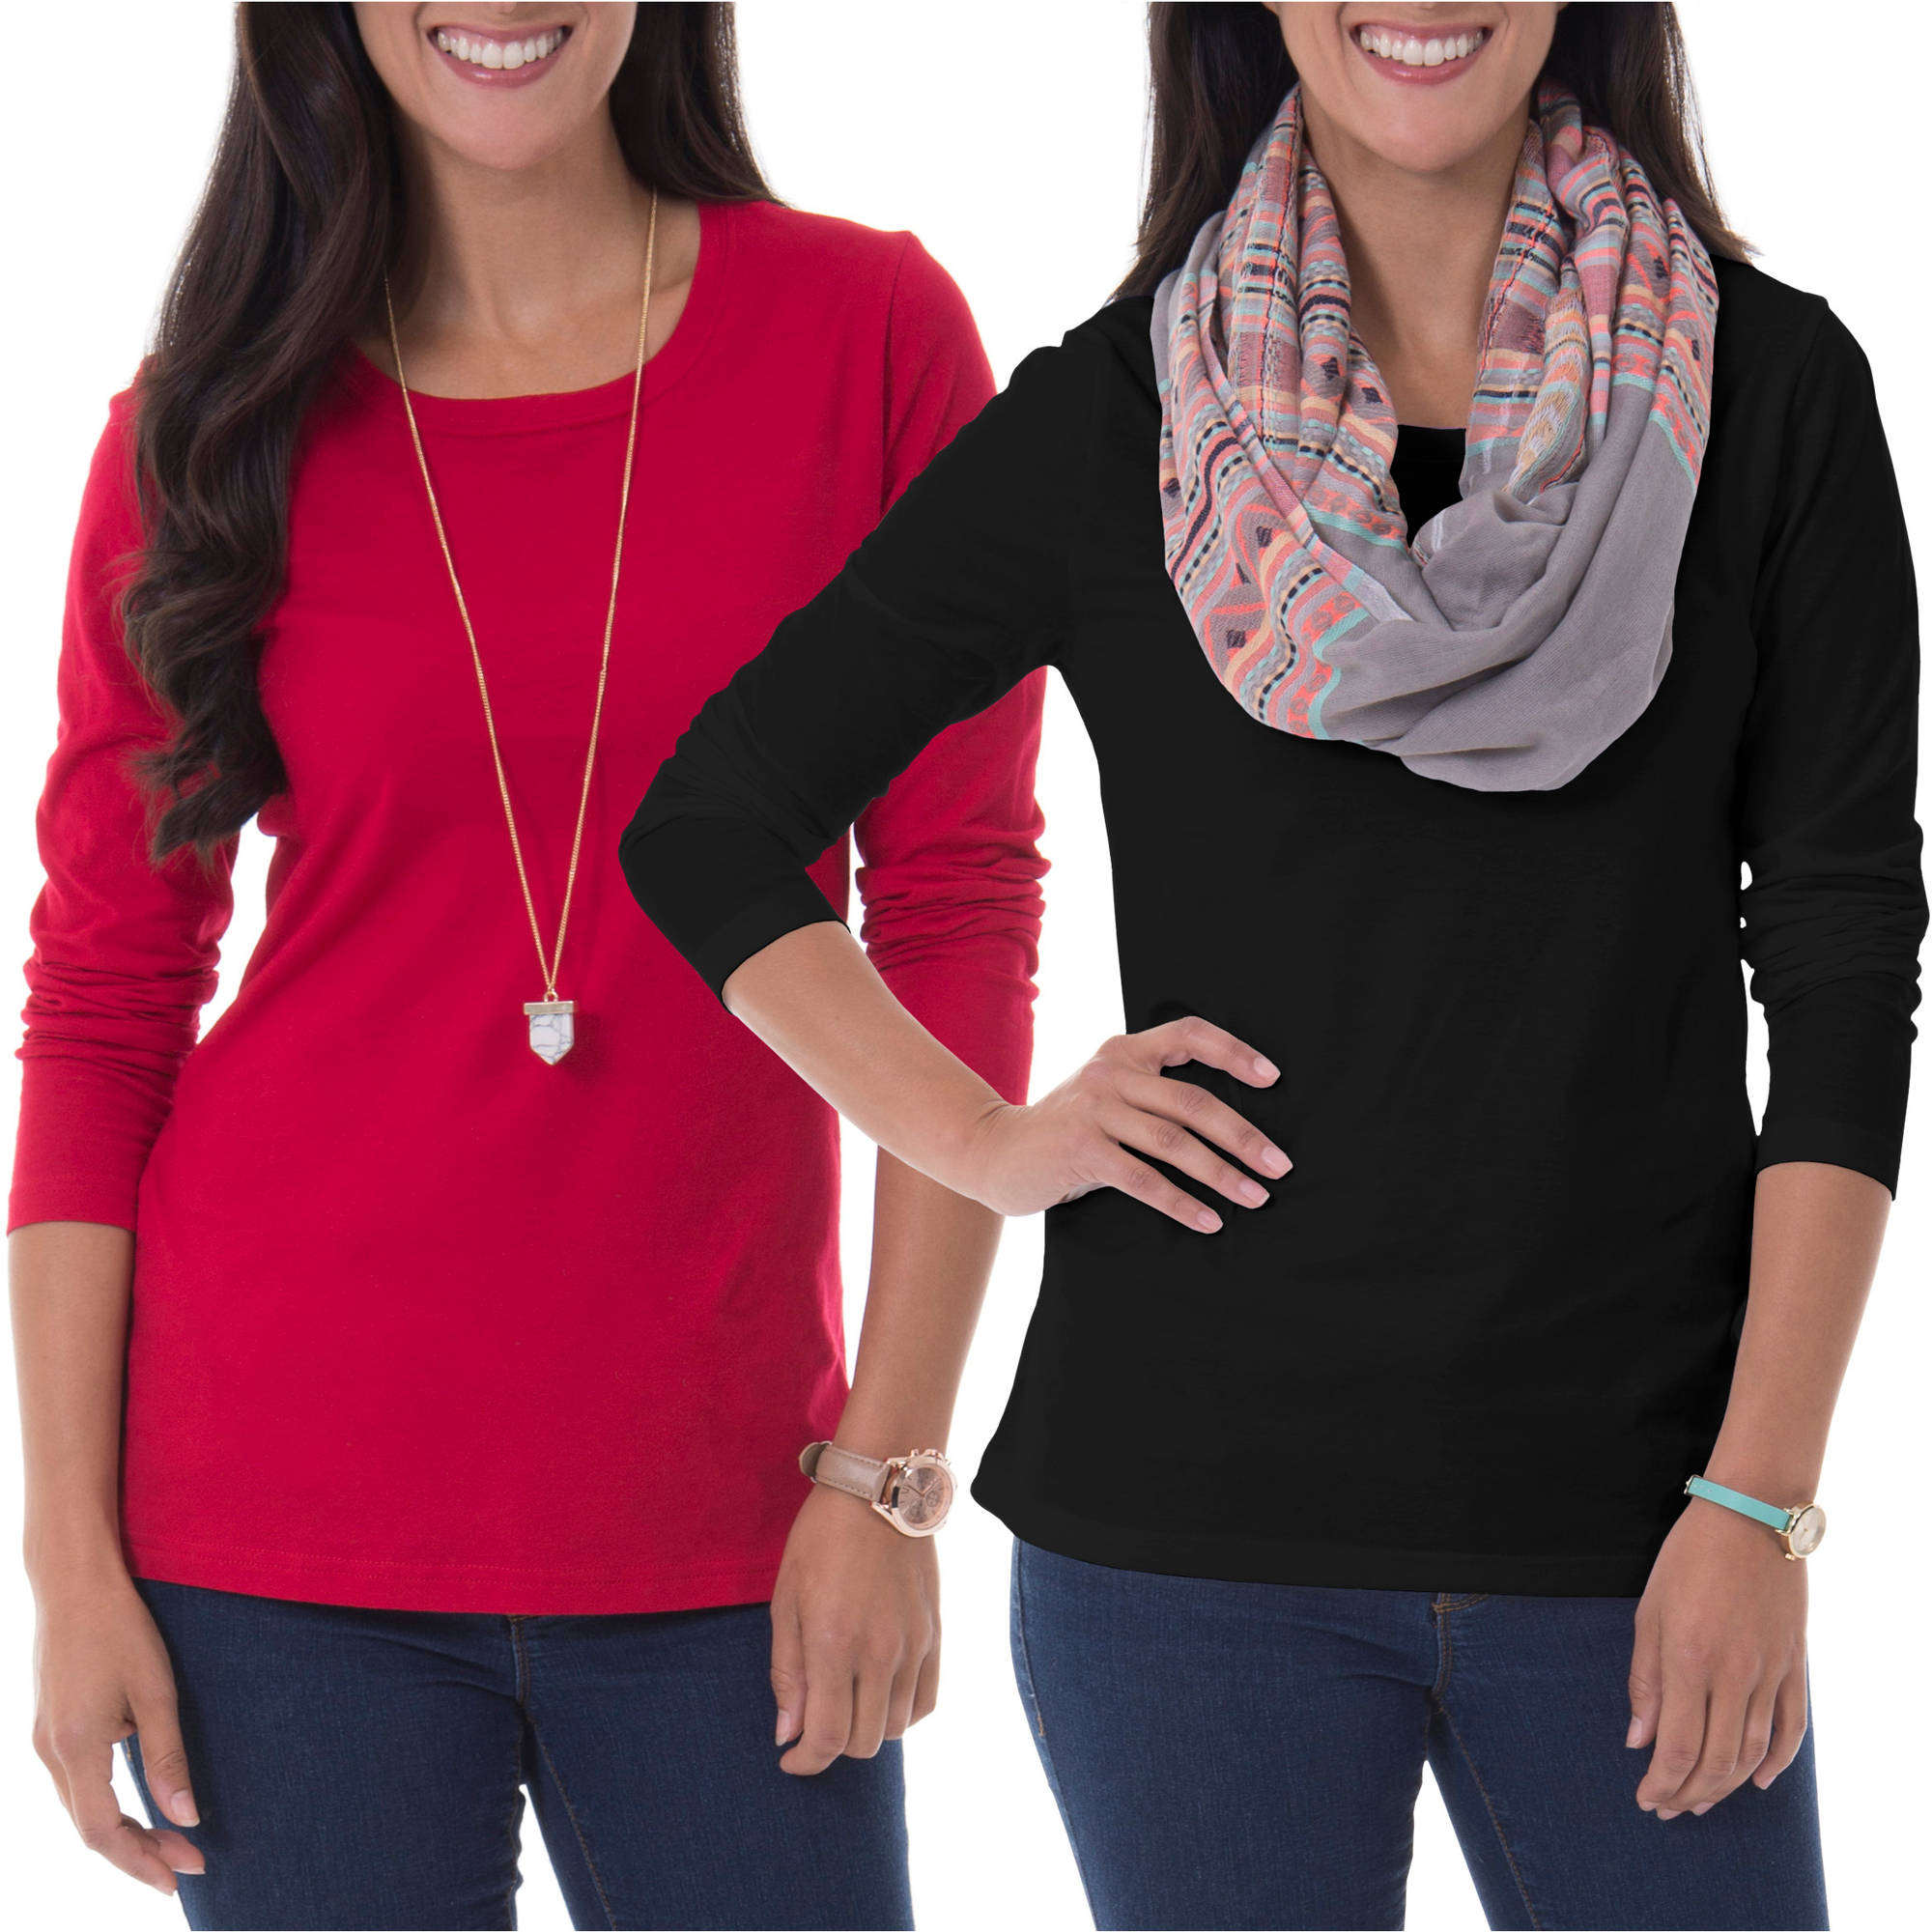 Faded Glory Women's Essential Long-Sleeve Crewneck Tee 2-Pack Value Bundle